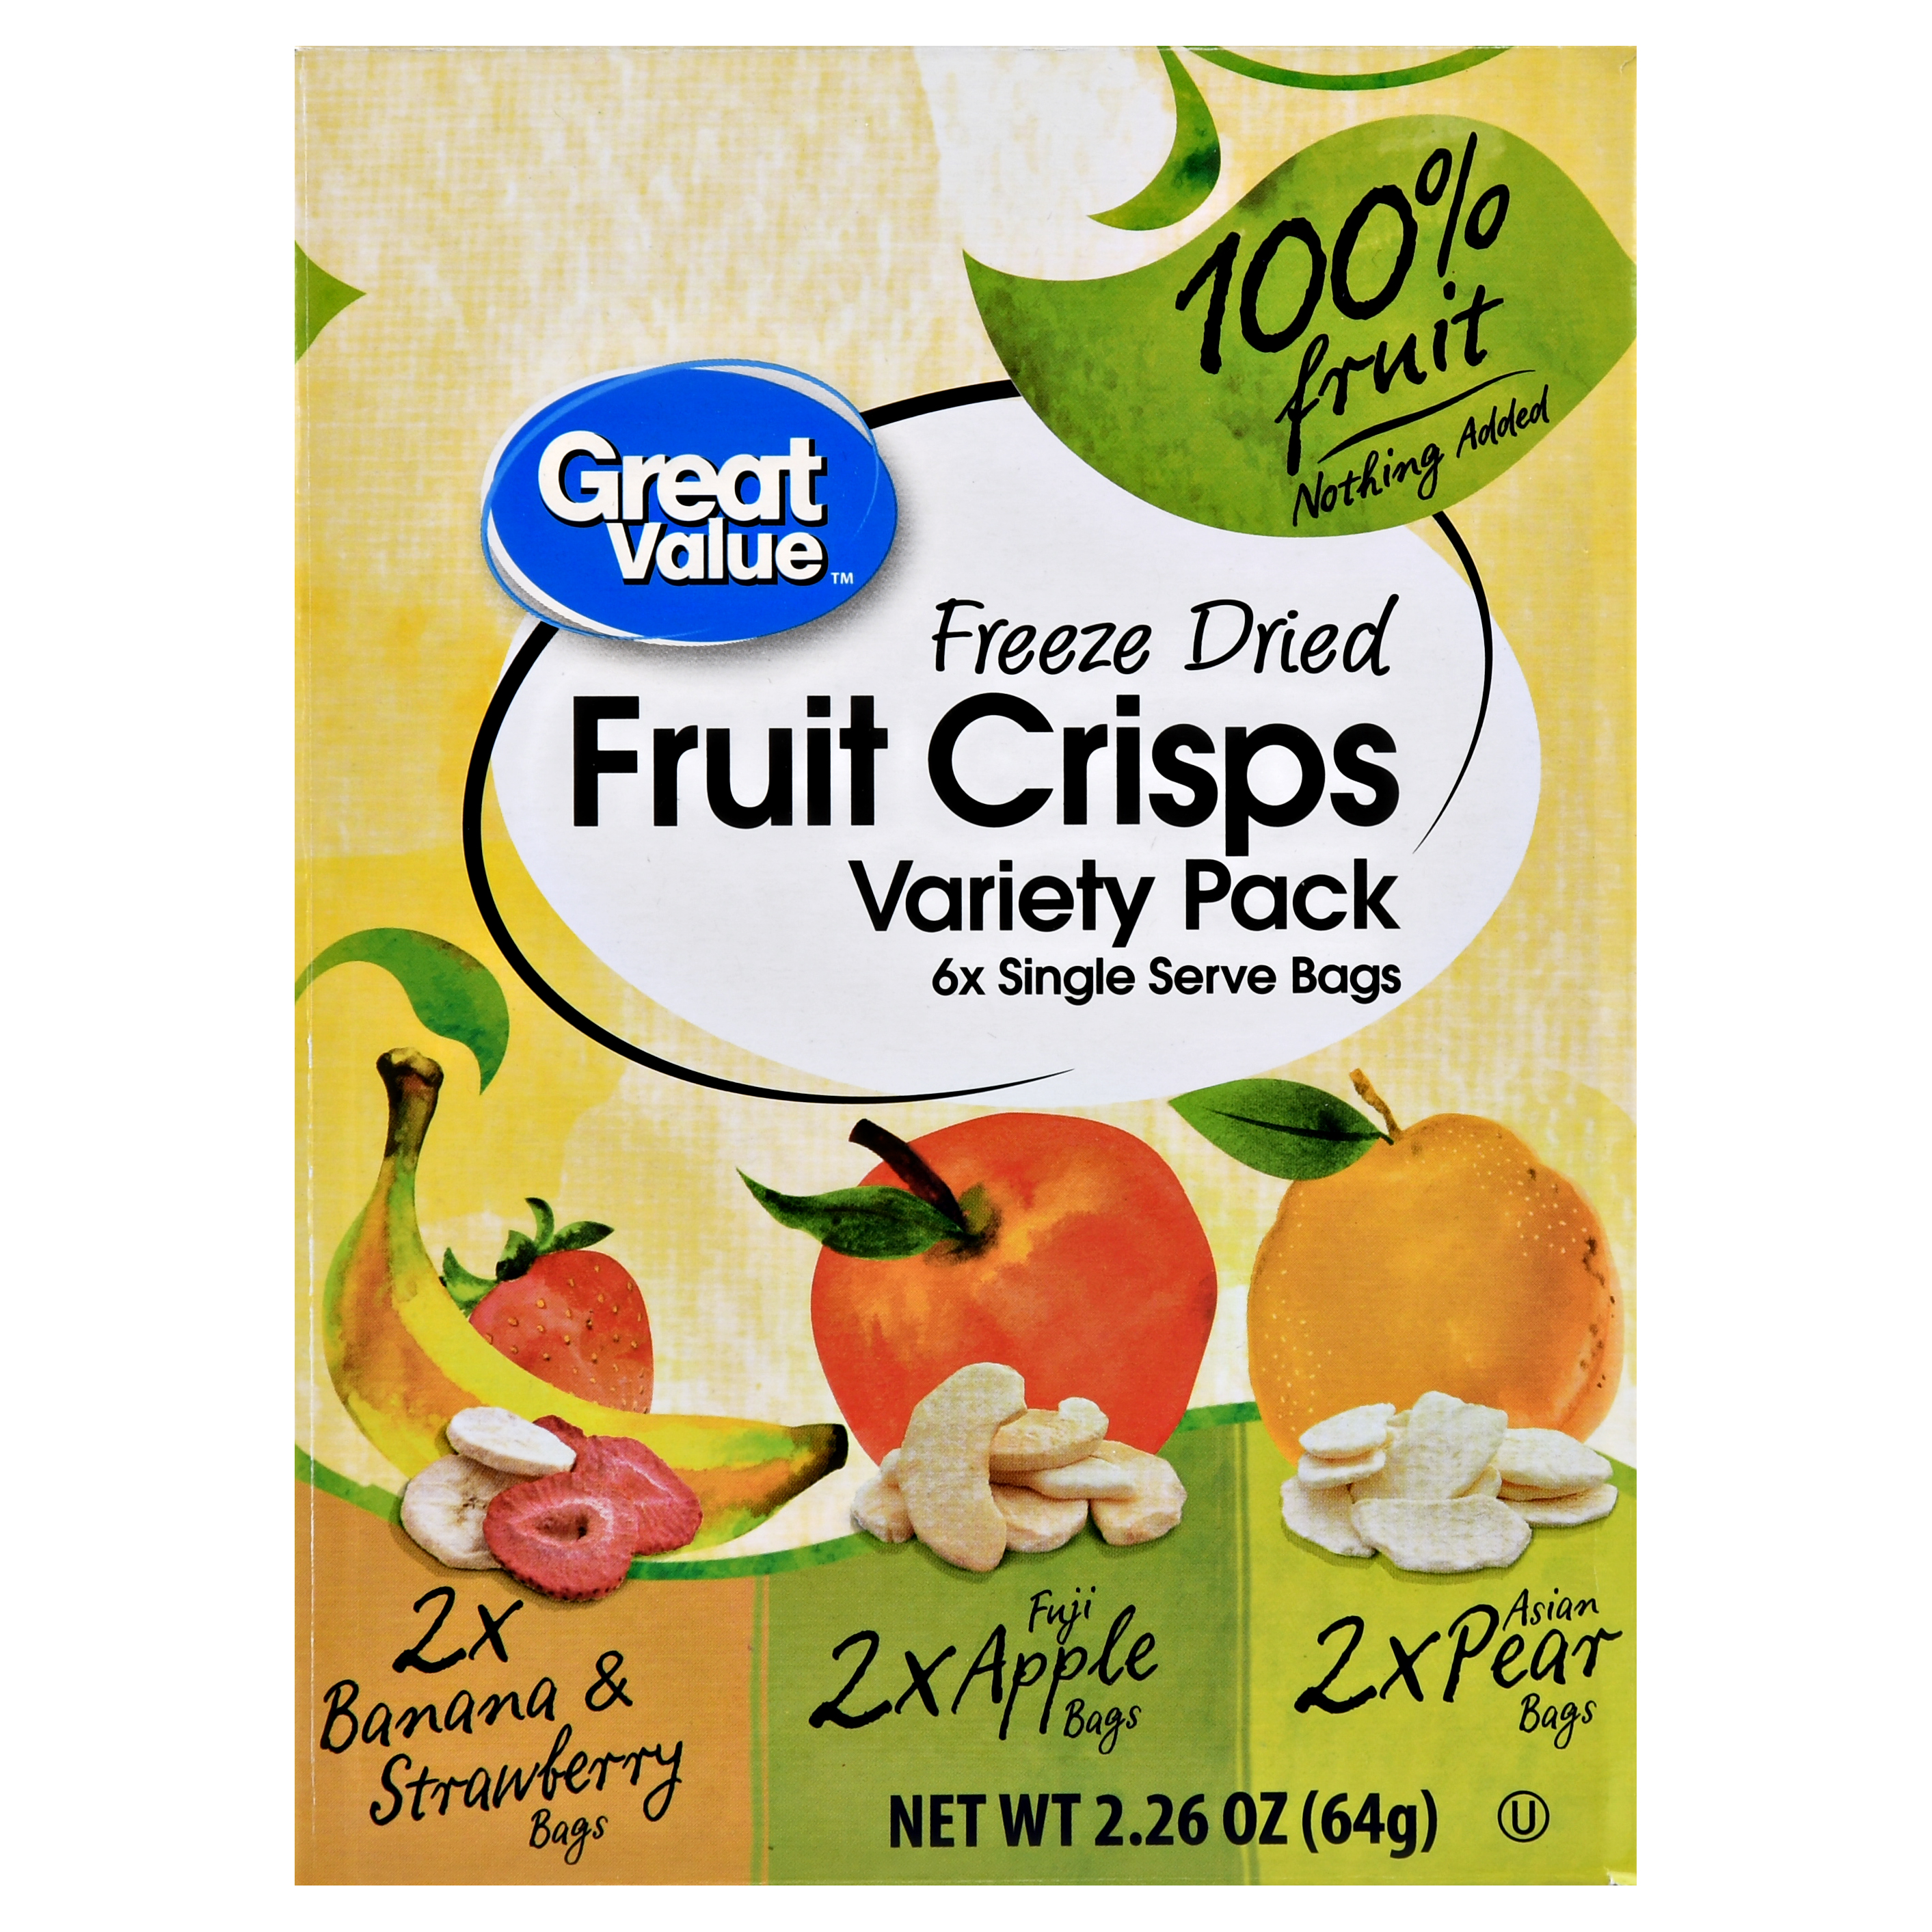 Great Value Freeze Dried Fruit Crisps Variety Pack, 6 Count